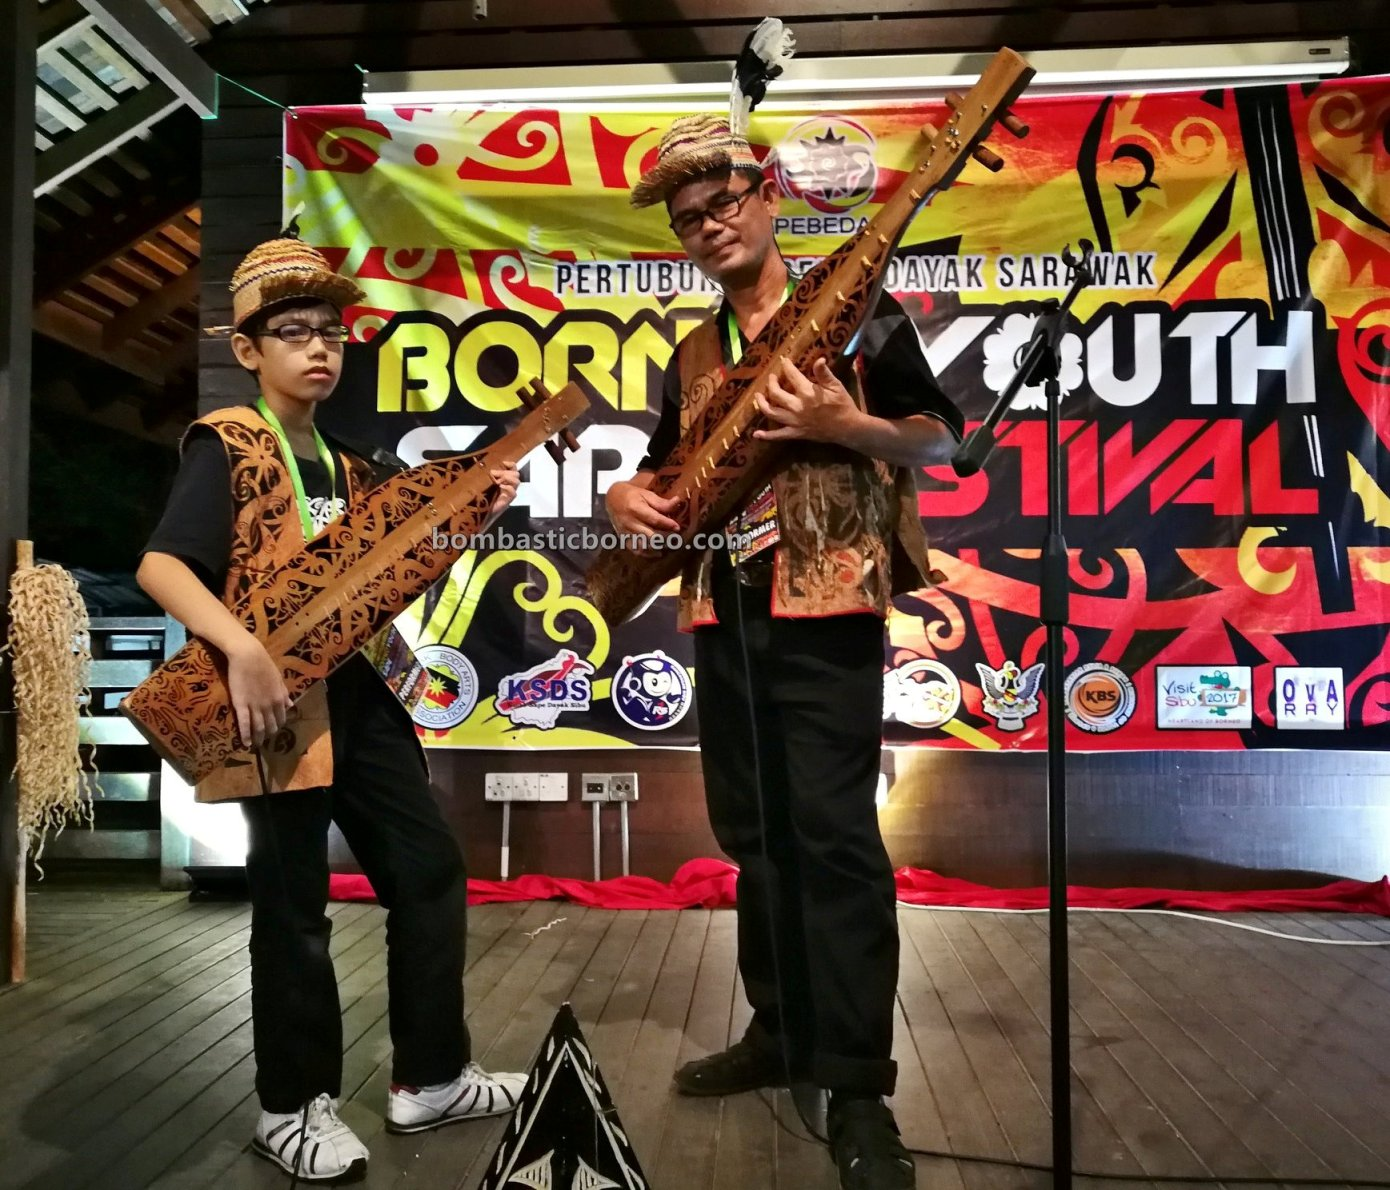 guitar, Youth Sape Festival, authentic, traditional, culture, event, Ethnic, native, orang ulu, Sibu, Tourism, tourist attraction, travel guide, 婆罗洲原住民沙贝, 砂拉越达雅吉他